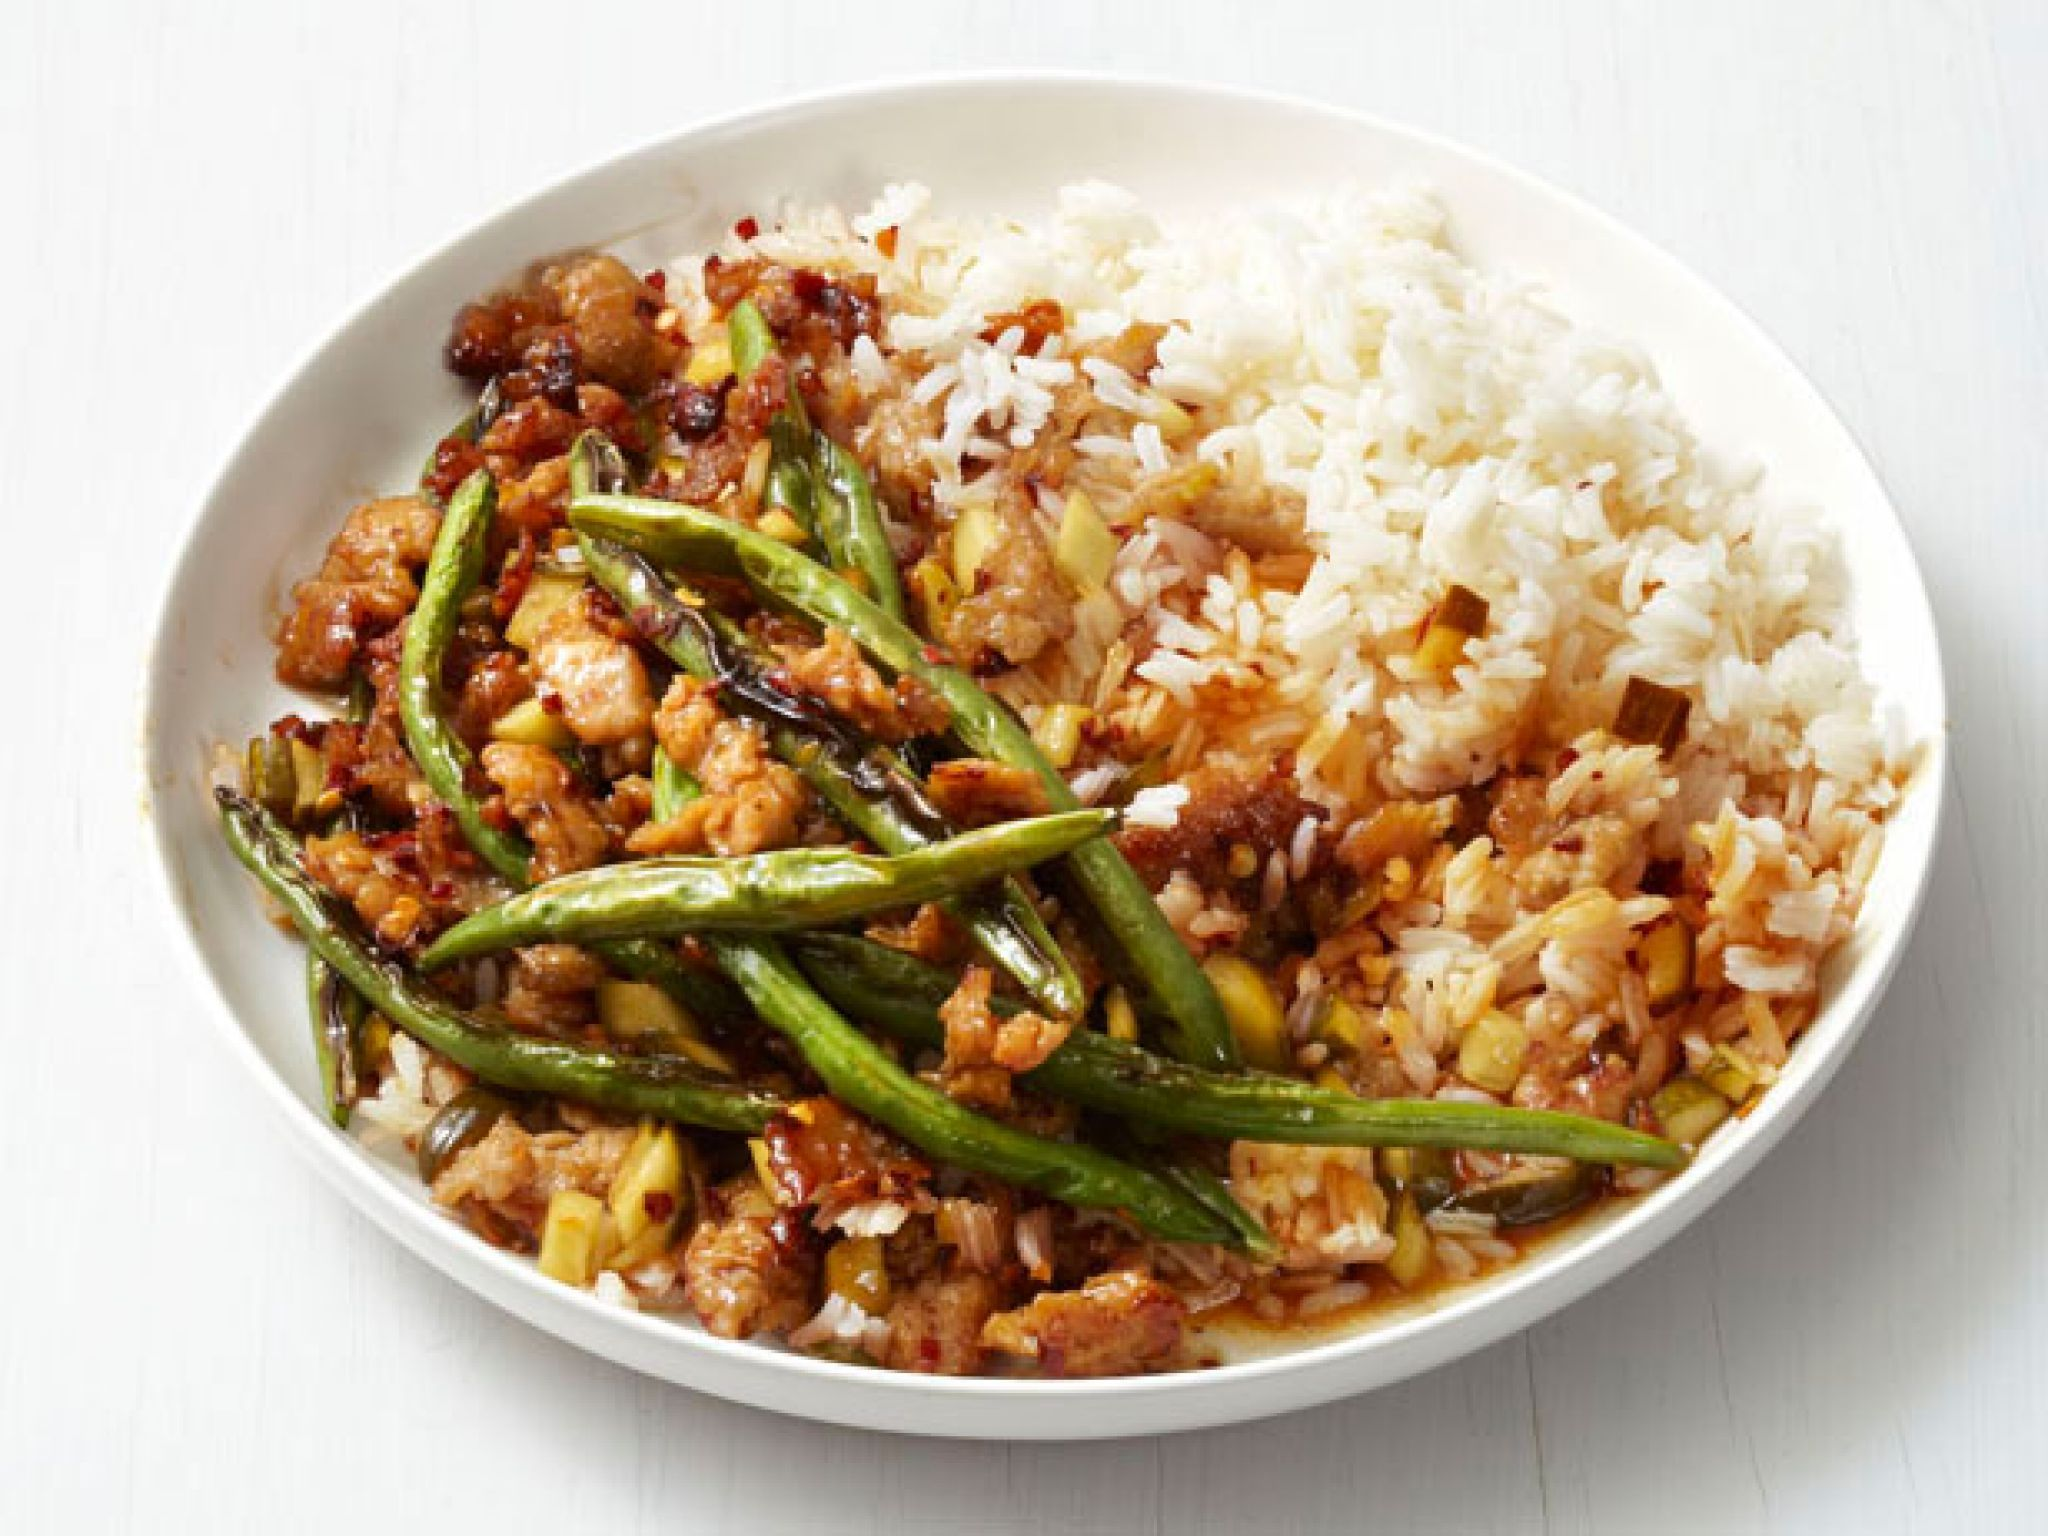 Family friendly weeknight dinner recipes food network green spicy turkey and green bean stir fry recipe food network kitchen food network turkey green bean stir fry forumfinder Choice Image